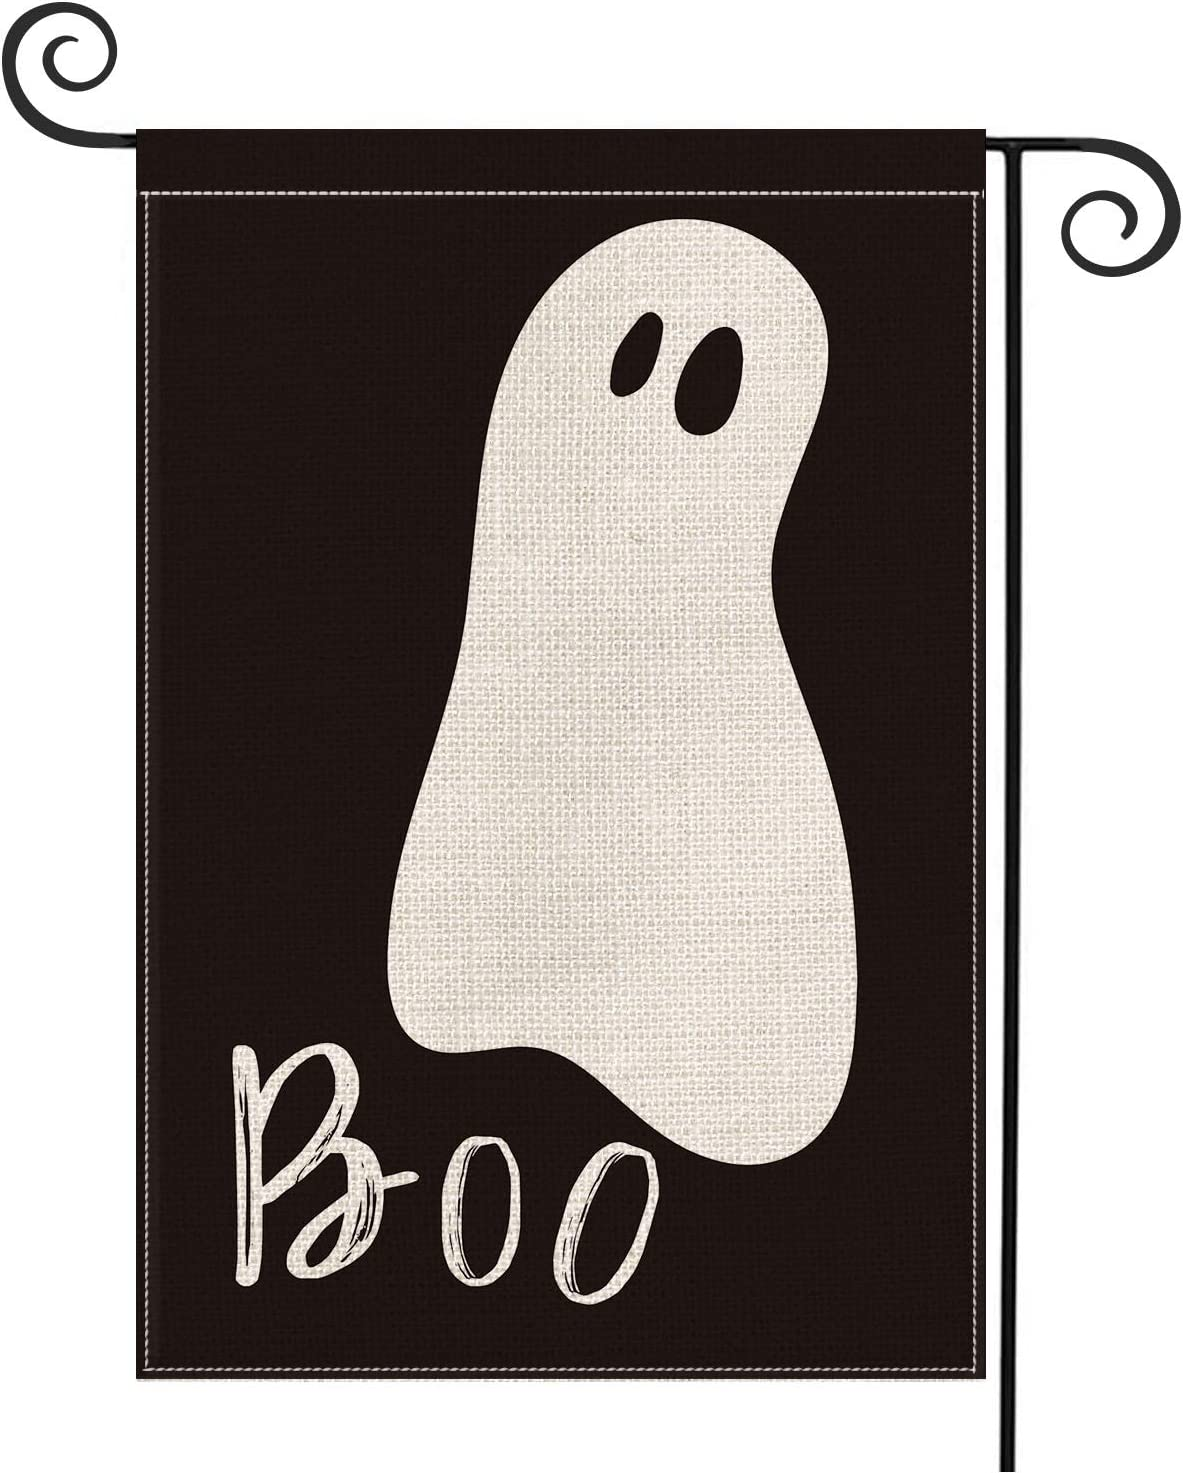 AVOIN Halloween Boo Garden Flag Vertical Double Sized Ghost Spooky, Holiday Yard Outdoor Decoration 12.5 x 18 Inch